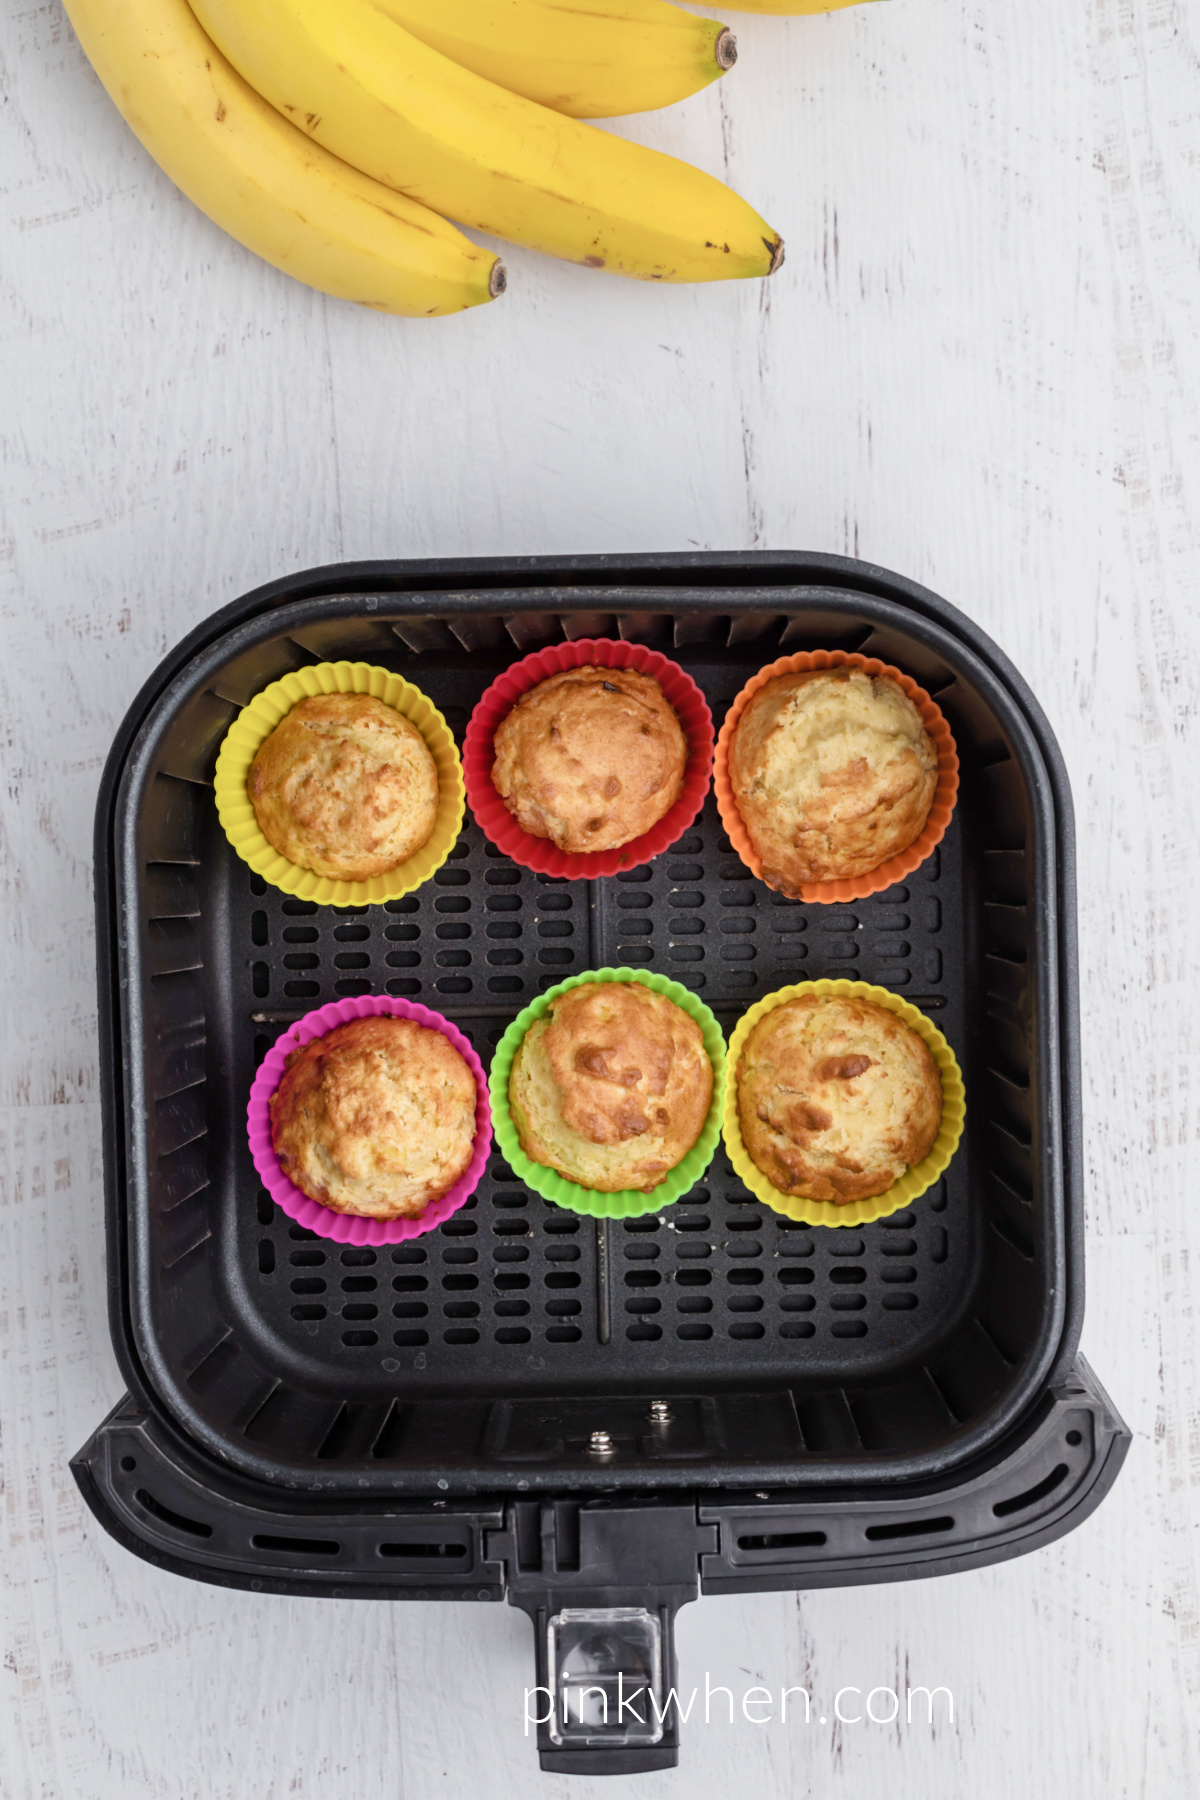 Baked banana muffins in the basket of the air fryer.